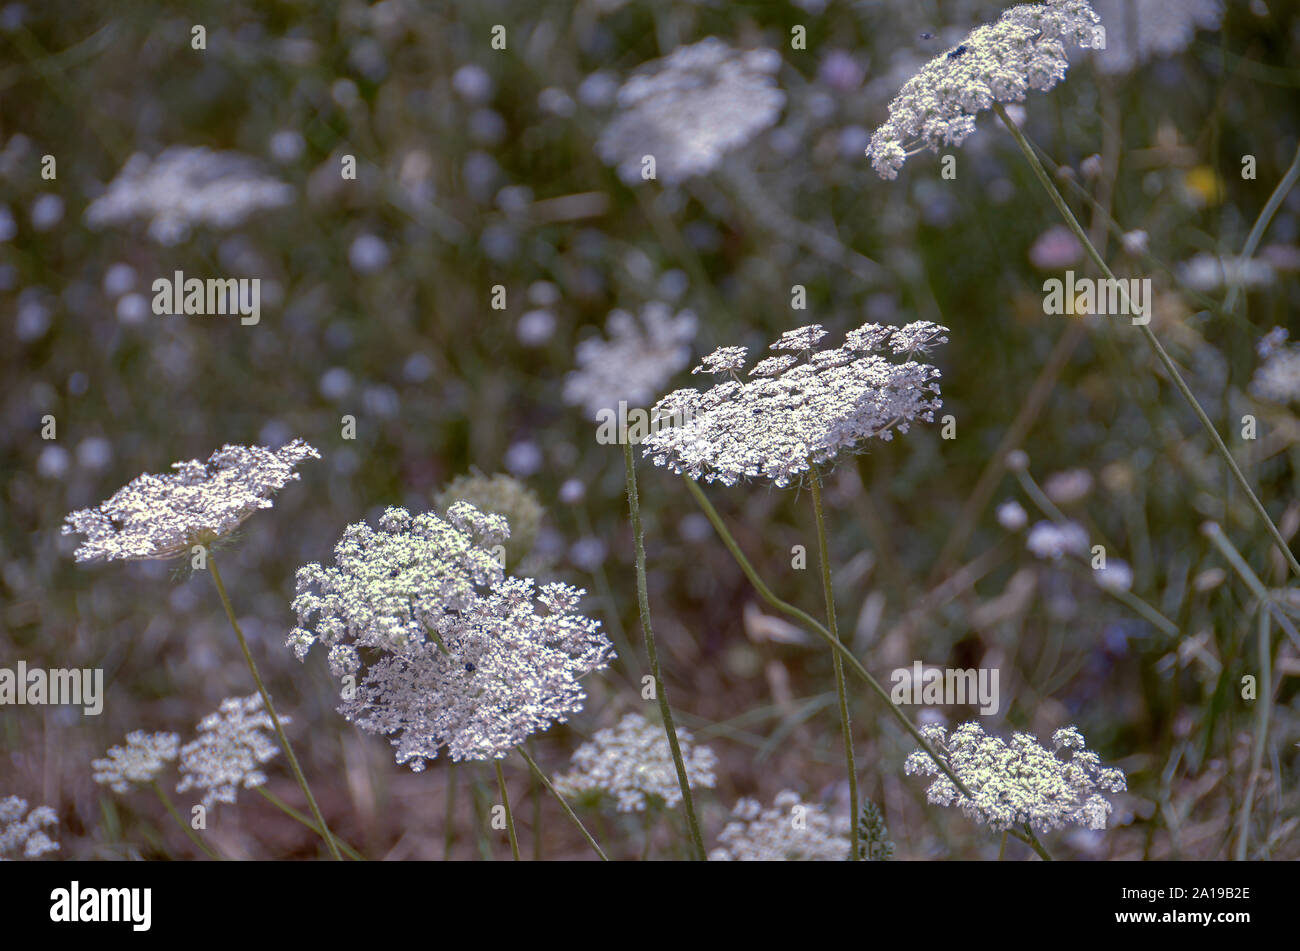 Daucus carota (common names include wild carrot, bird's nest, bishop's lace, and Queen Anne's lace). Photographed in June in the Carmel Mountain, Isra Stock Photo